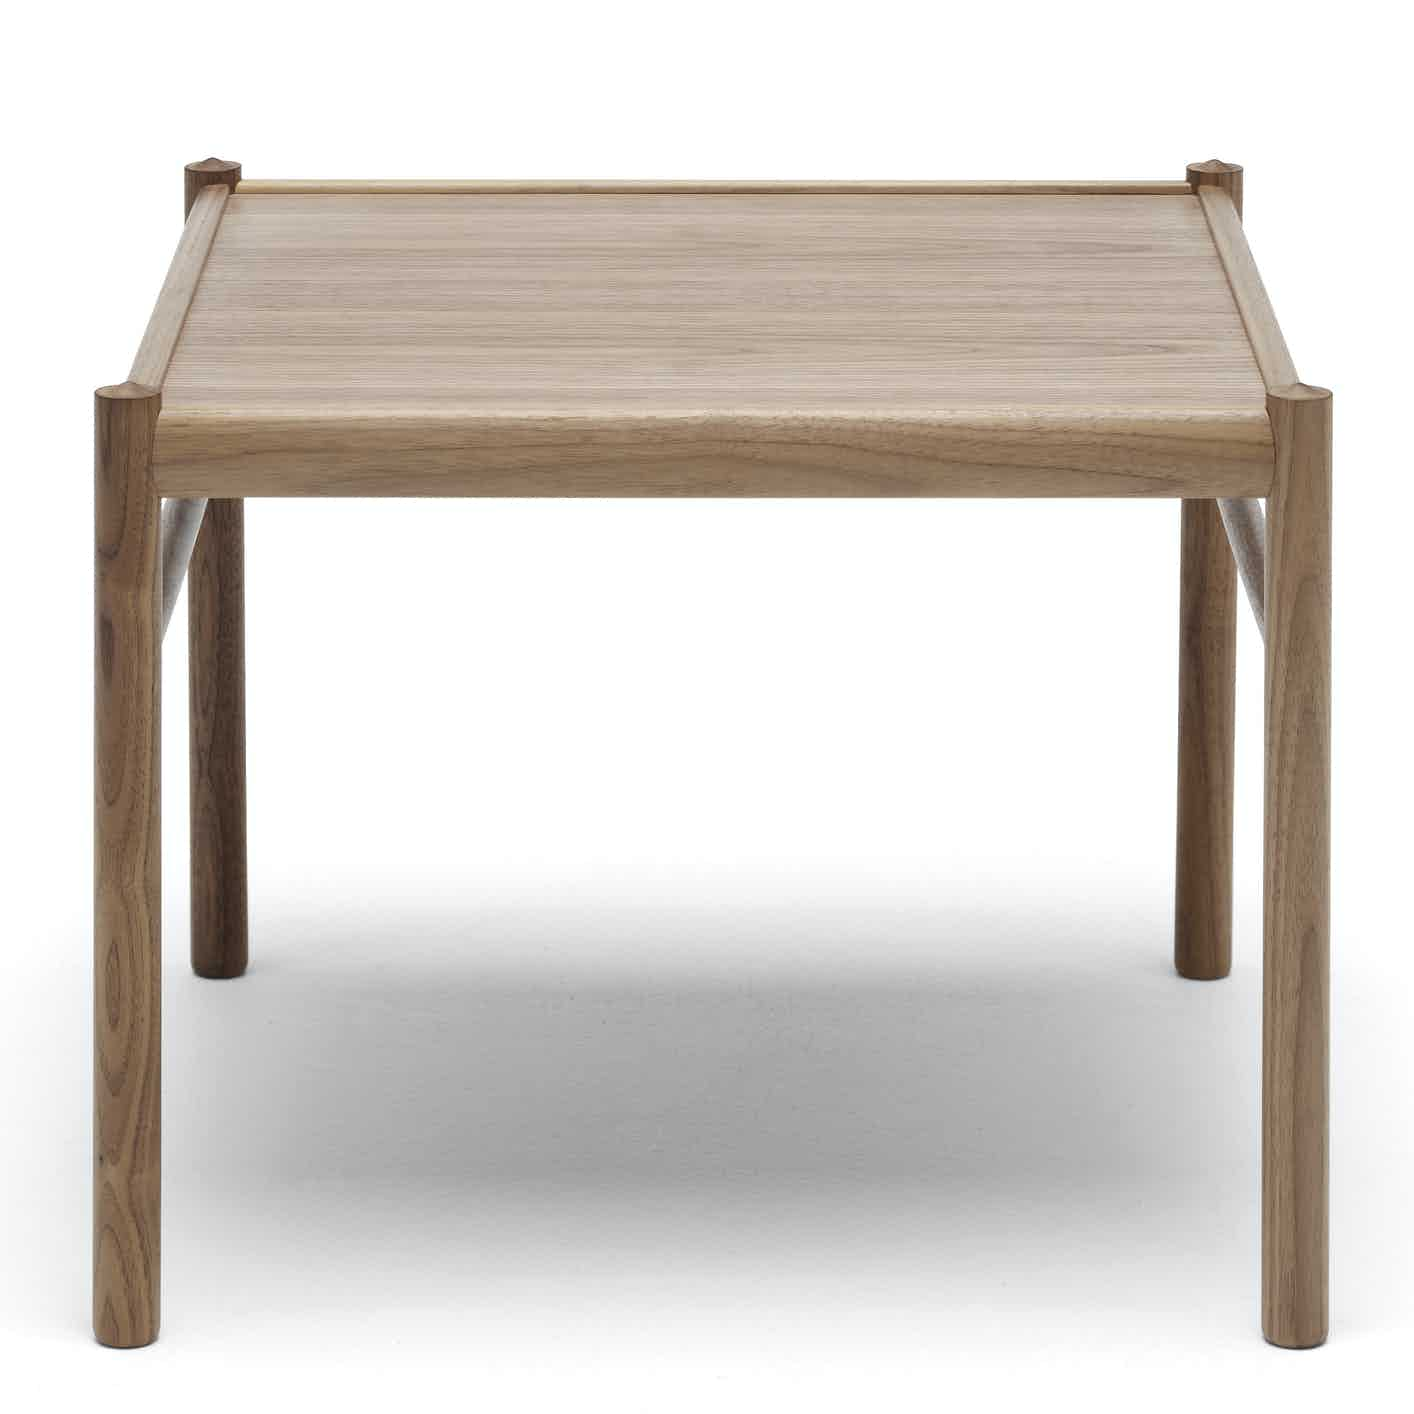 Carl-hansen-son-walnut-side-ow449-haute-living